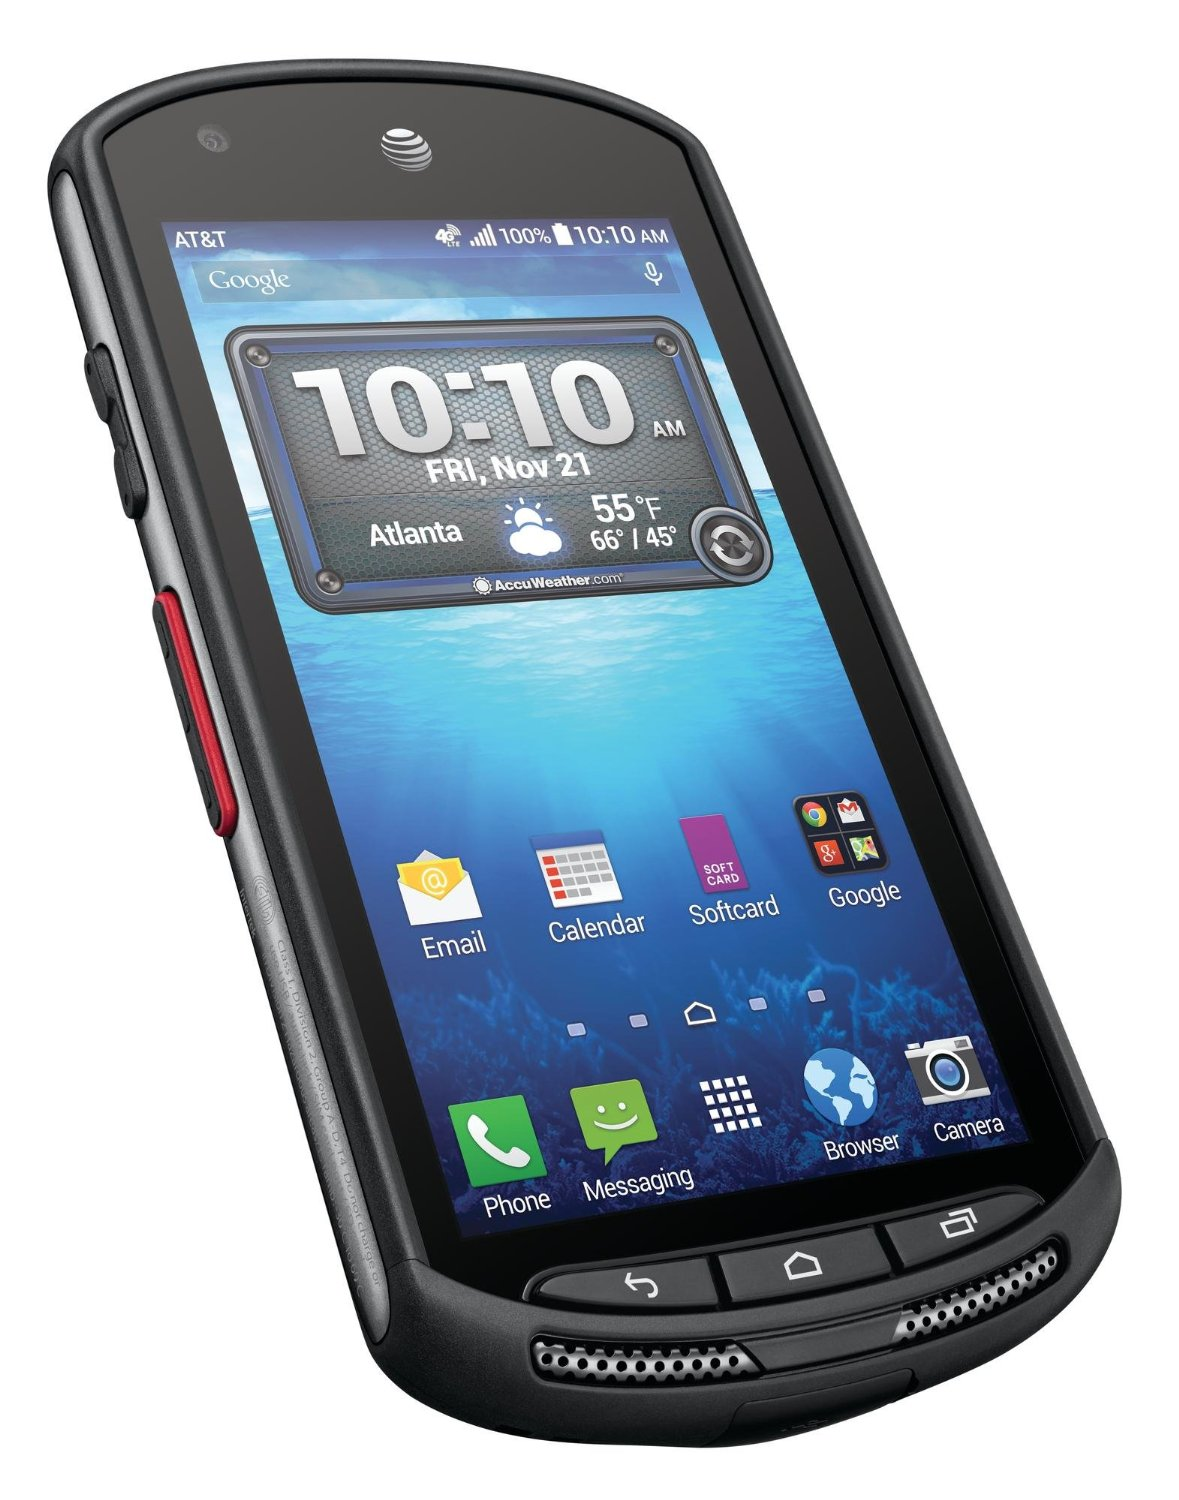 Kyocera DuraForce E6560 16GB Unlocked GSM 4G LTE Military Grade Smartphone  W/ 8MP Camera   Black   Walmart.com